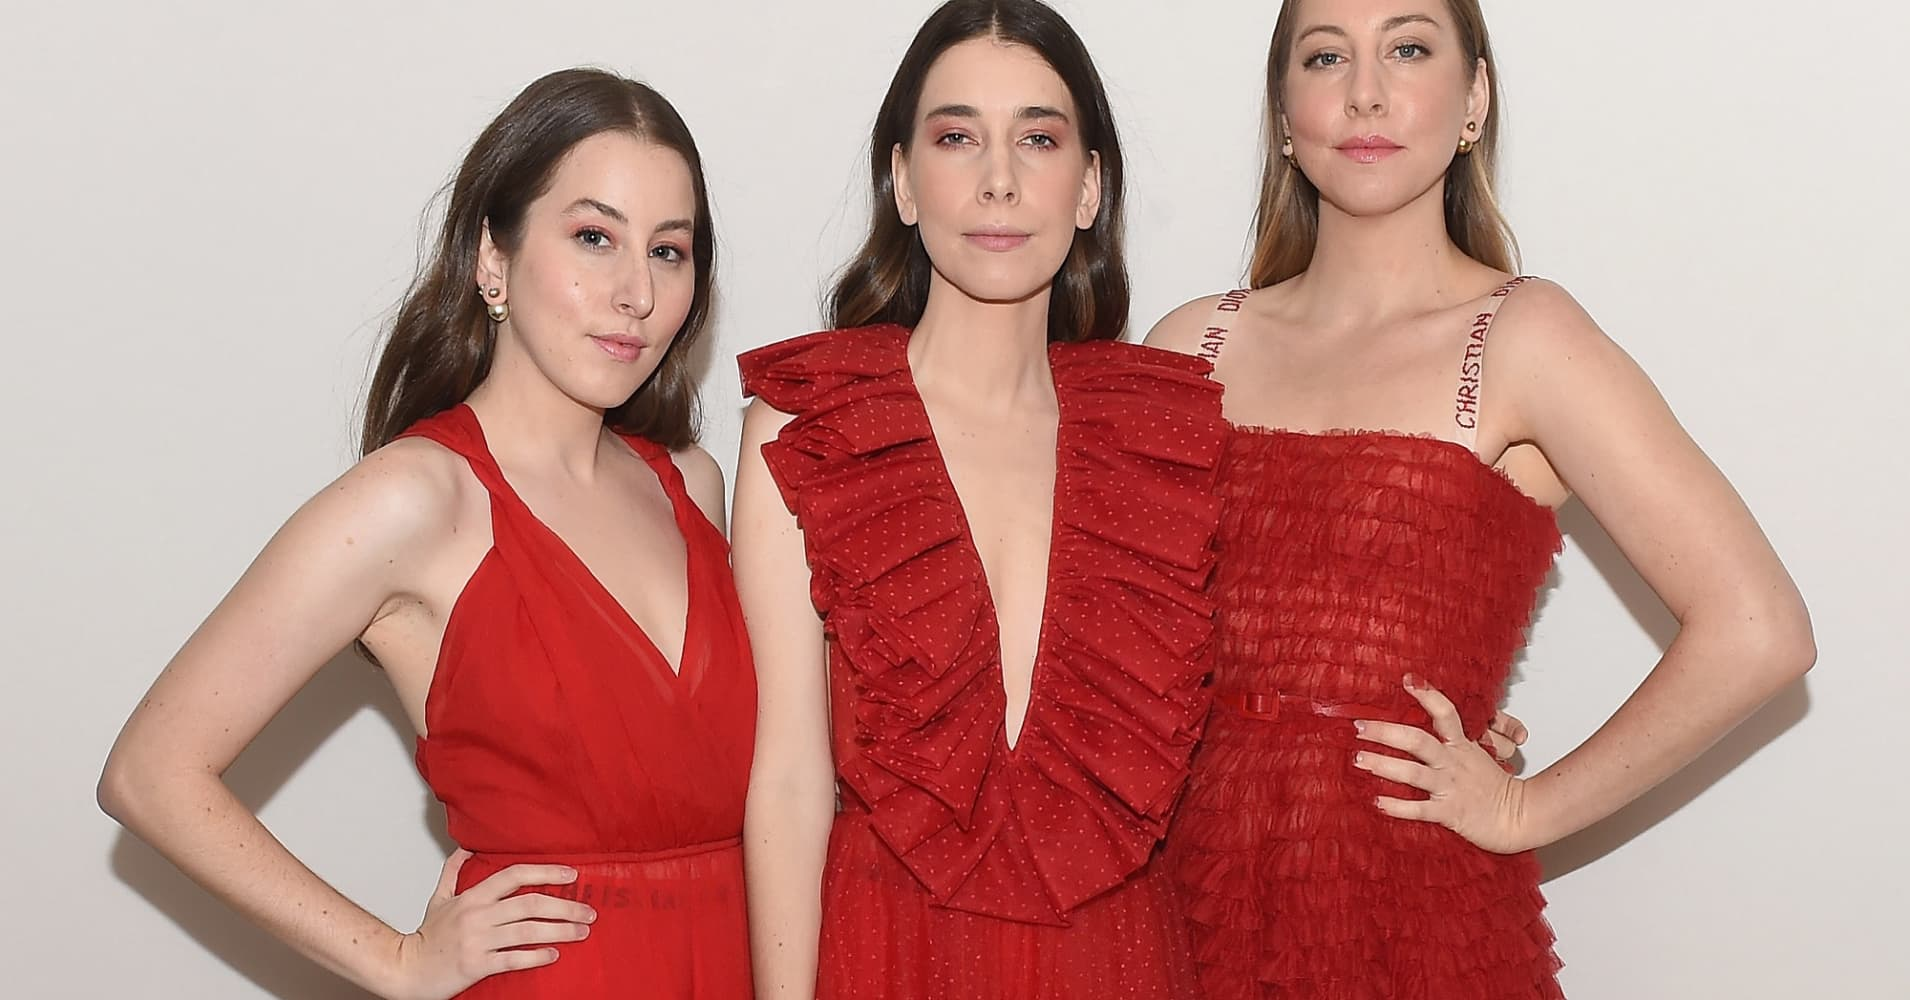 Alana Haim, Danielle Haim and Este Haim attend the 2017 Guggenheim International Gala.